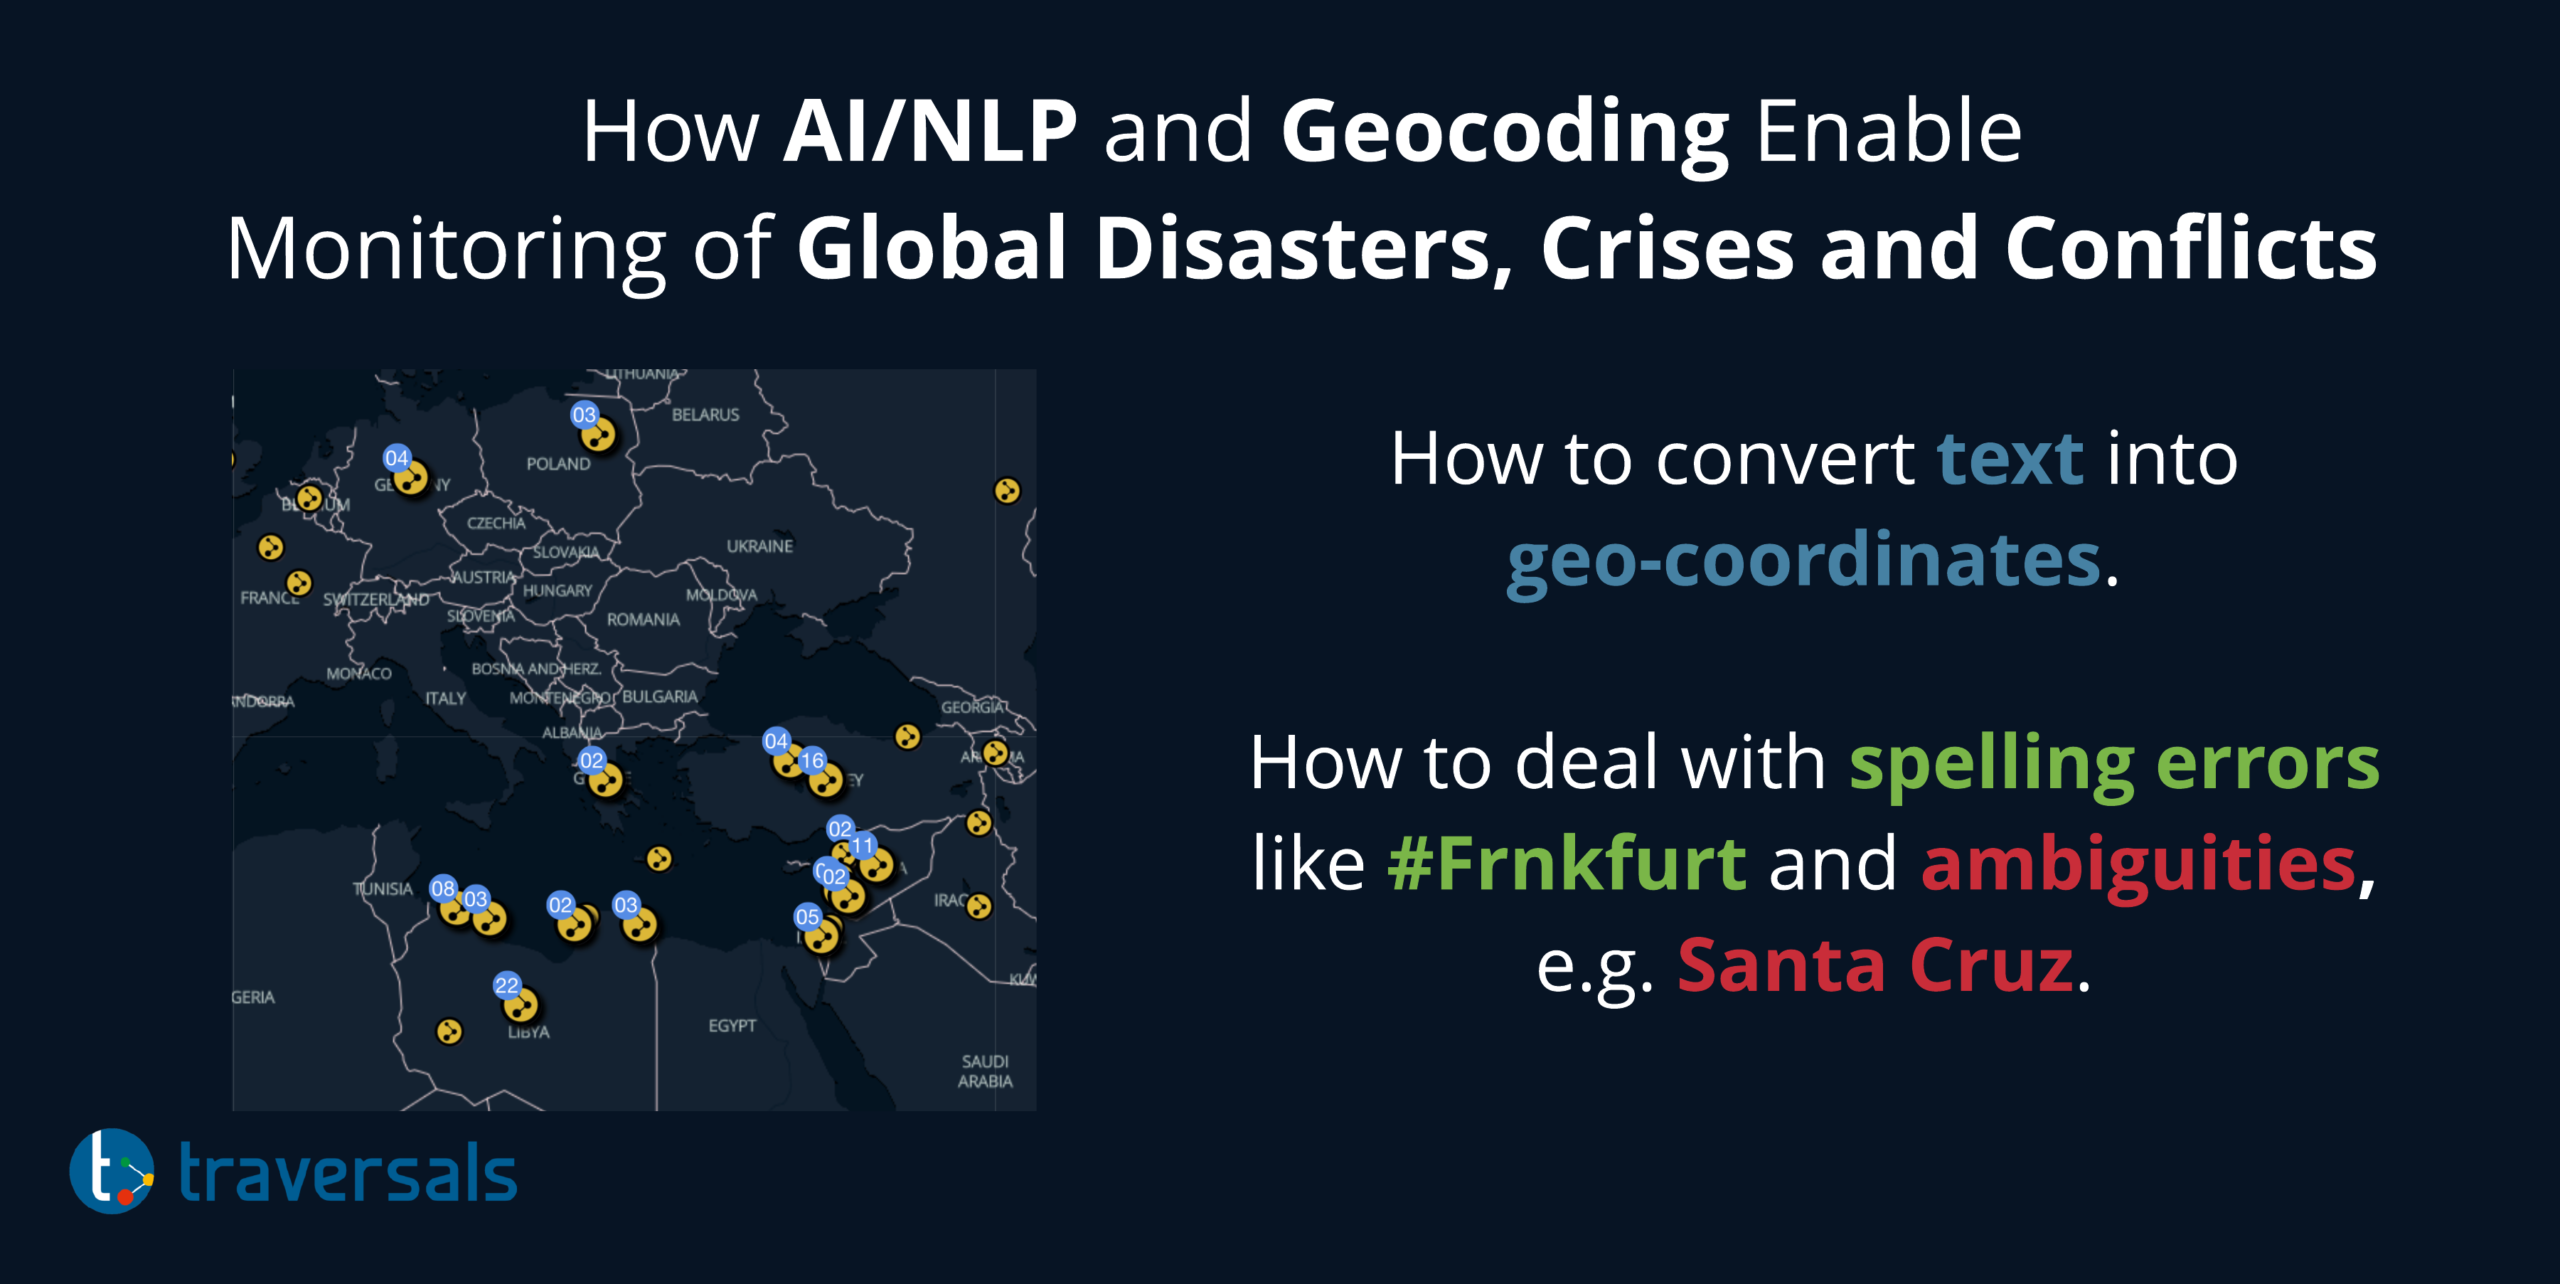 How AI/NLP and Geocoding Support Monitoring of Global Conflicts